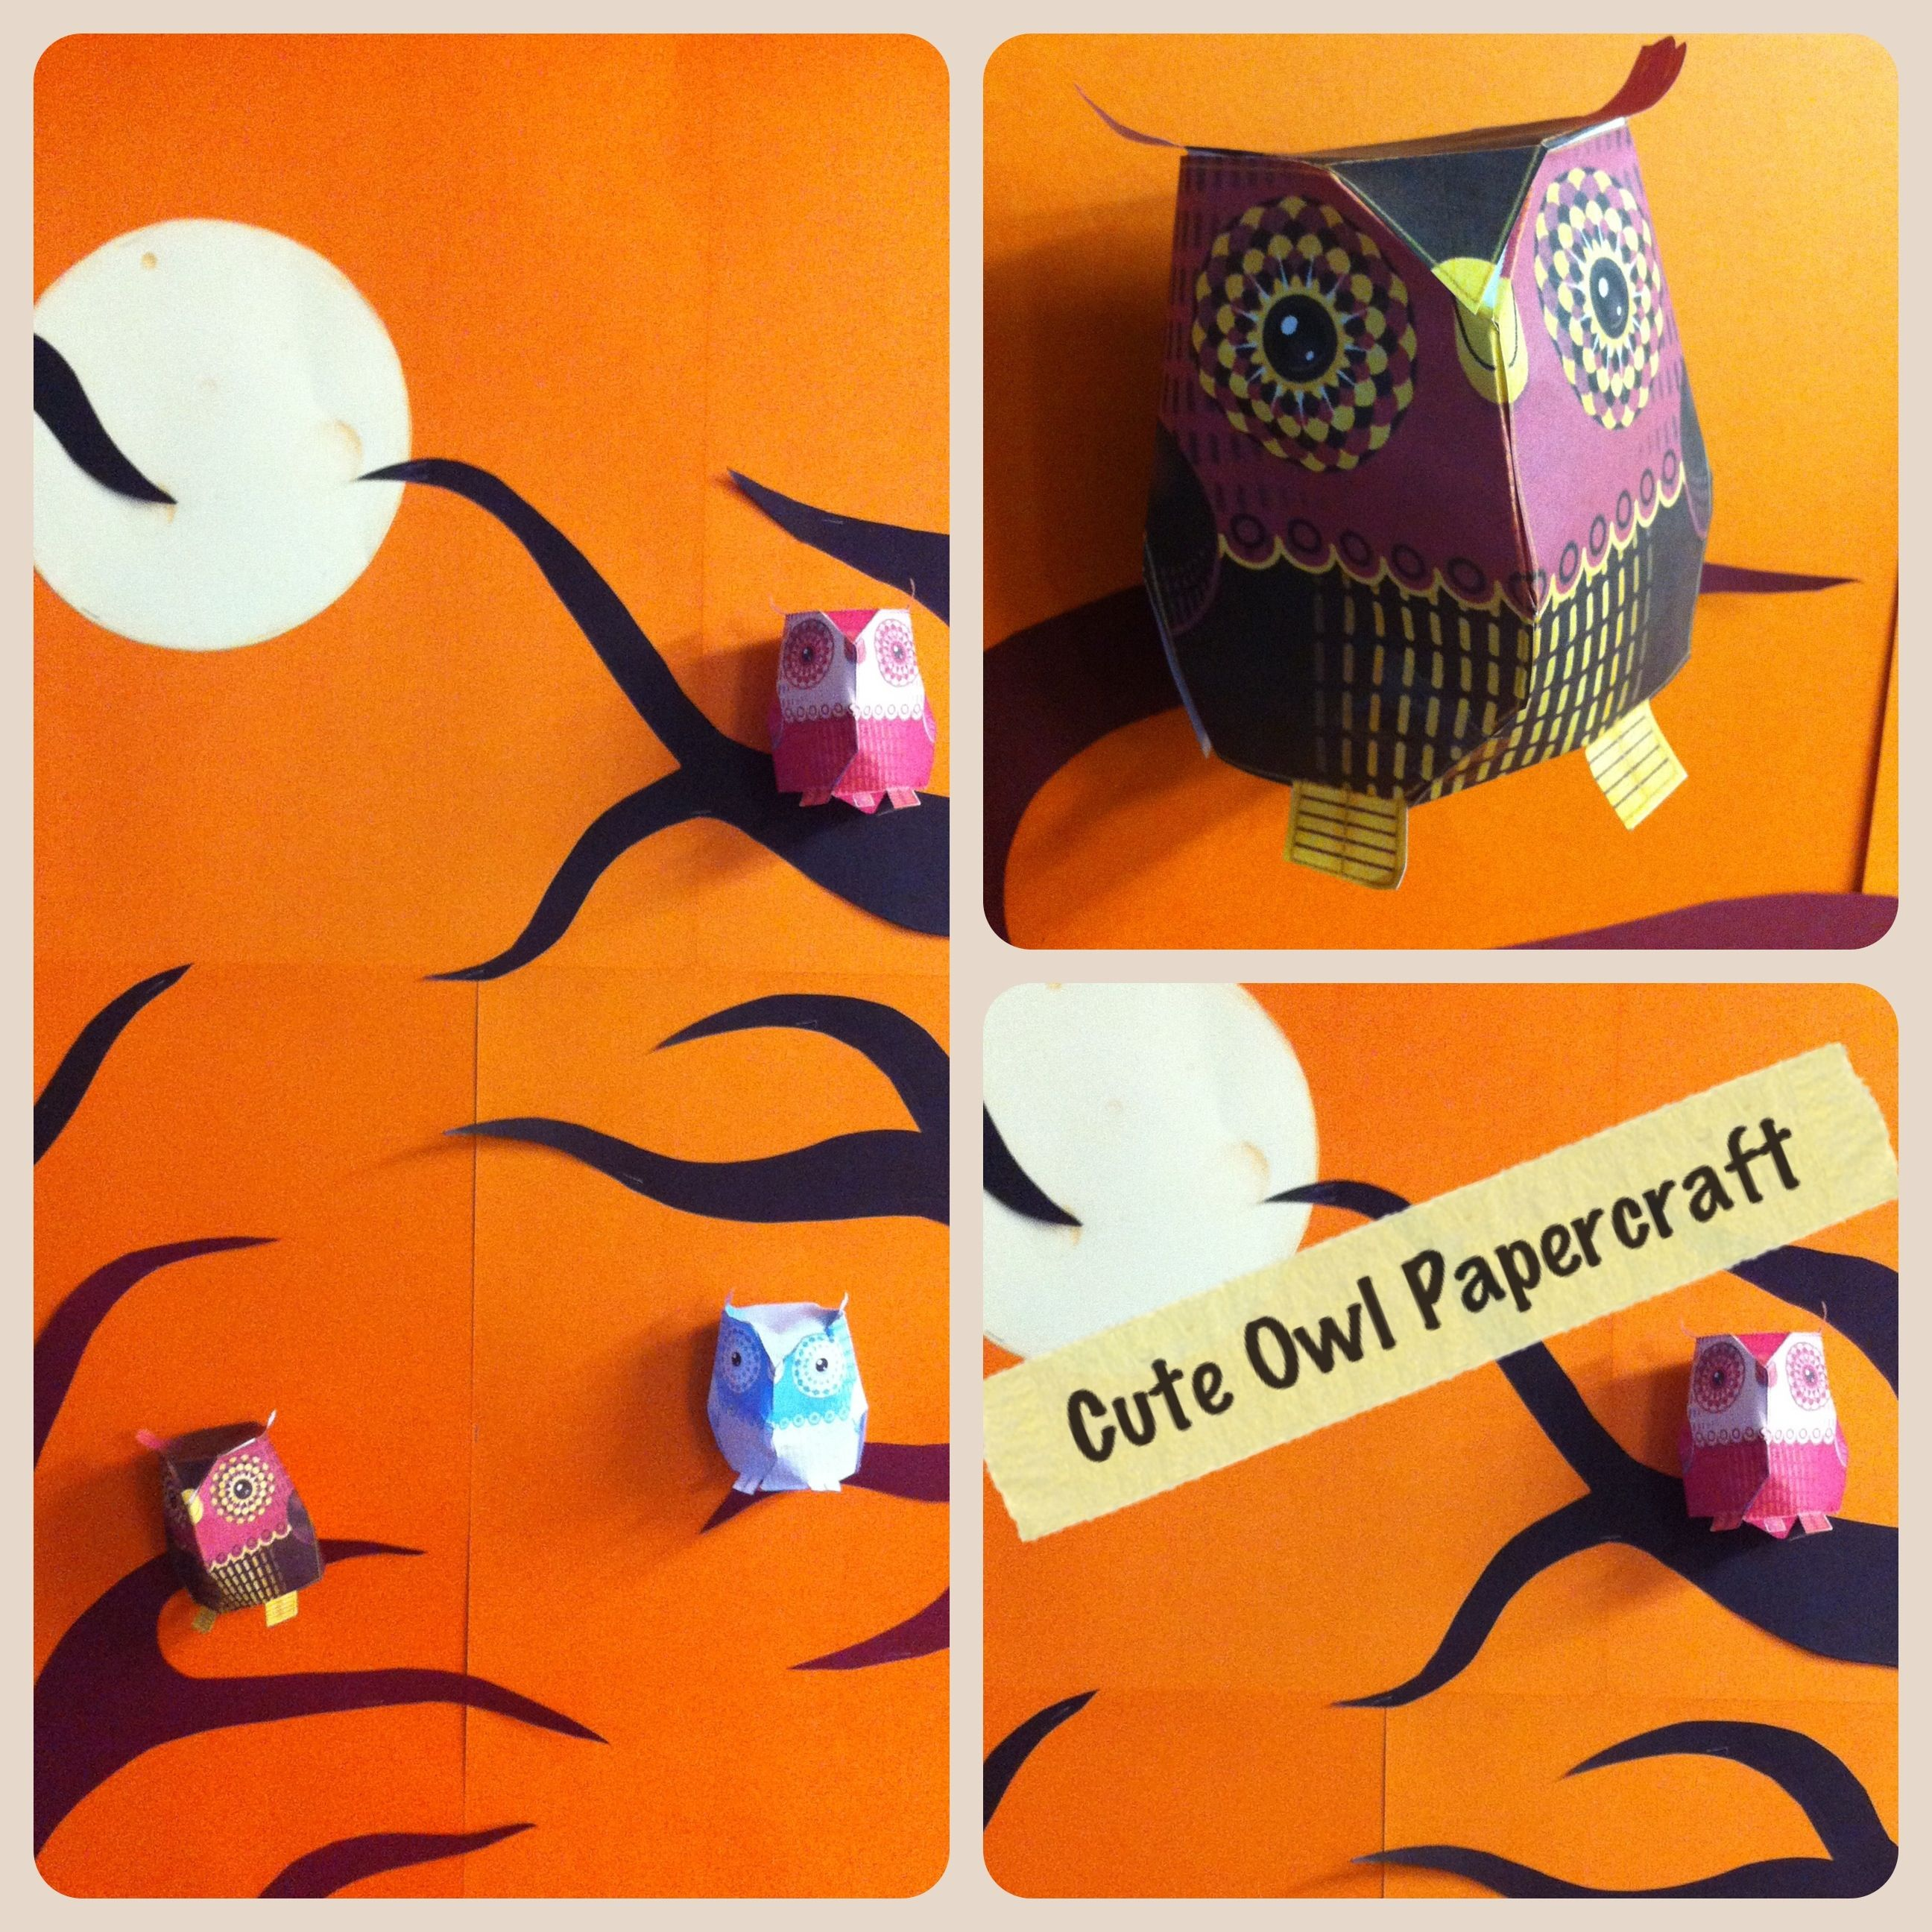 We made this owl display at school possibly for halloween very we made this owl display at school possibly for halloween very cute owl paper craft simply cut out and stick suitable for over age 9 approx free jeuxipadfo Choice Image